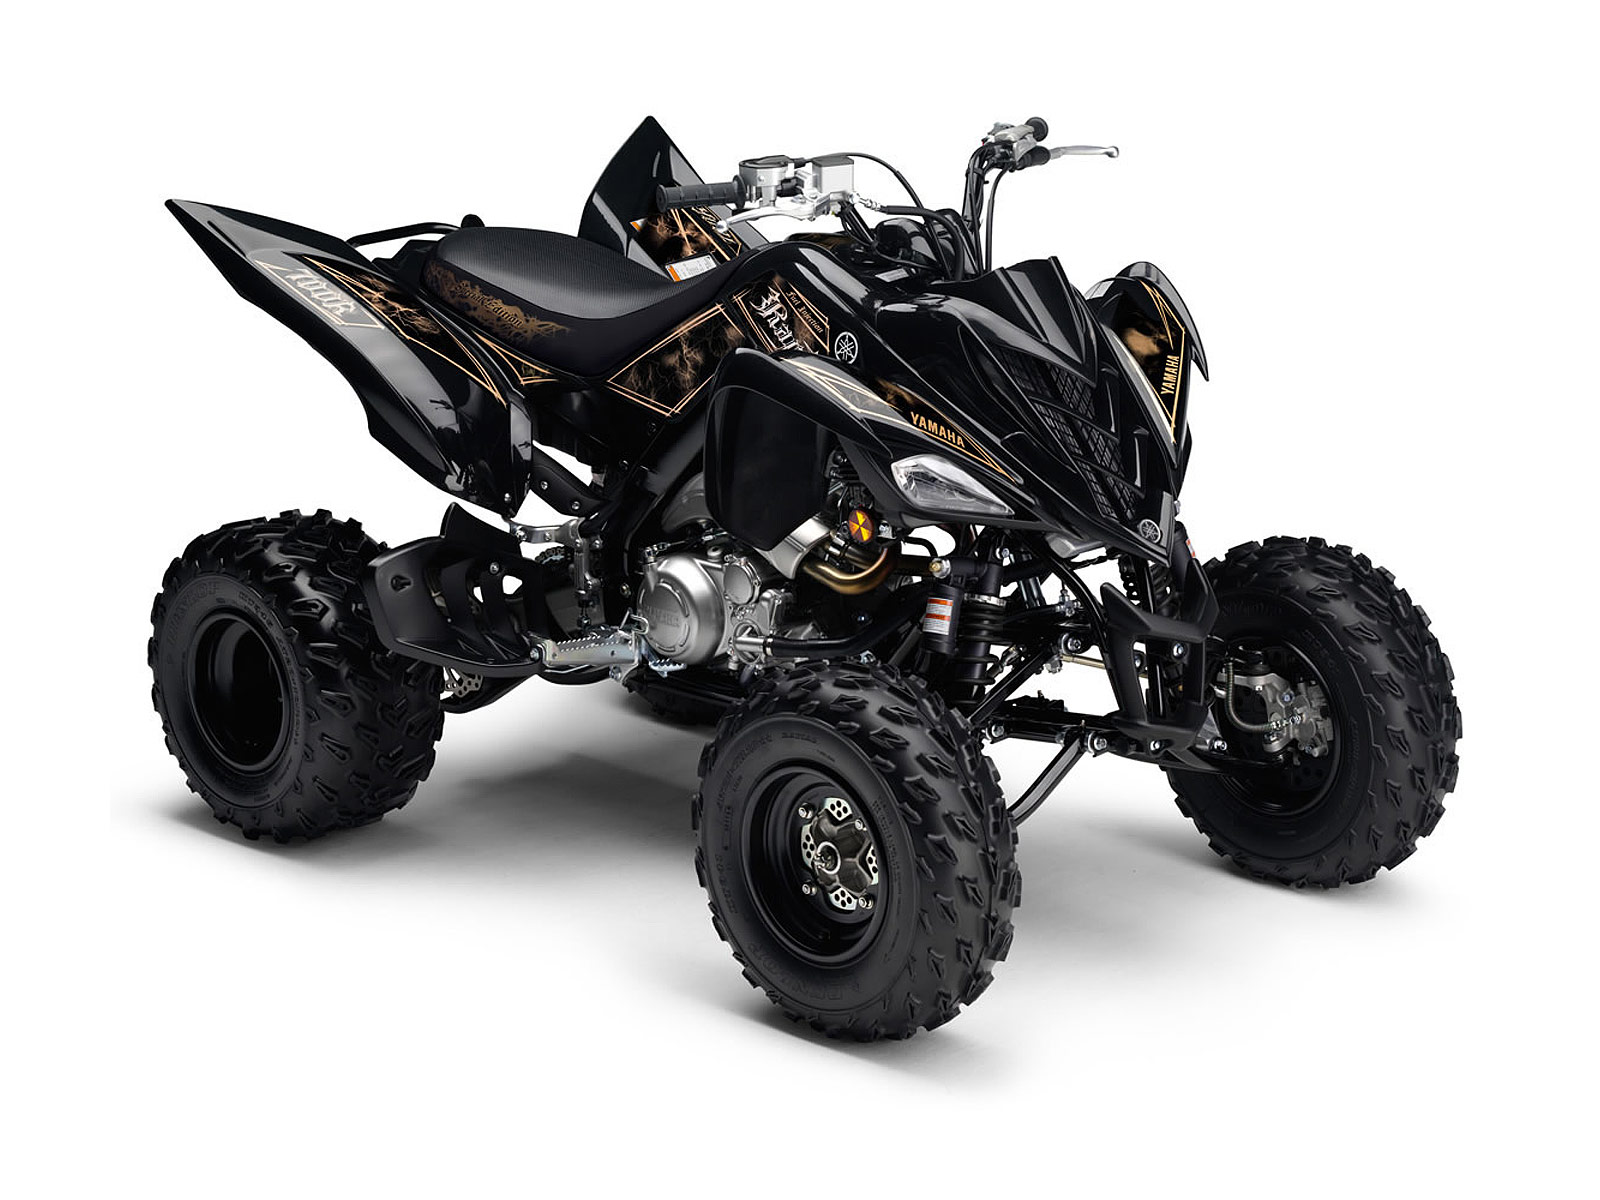 2012 YAMAHA Raptor 700R SE review specifications pictures 1600x1200